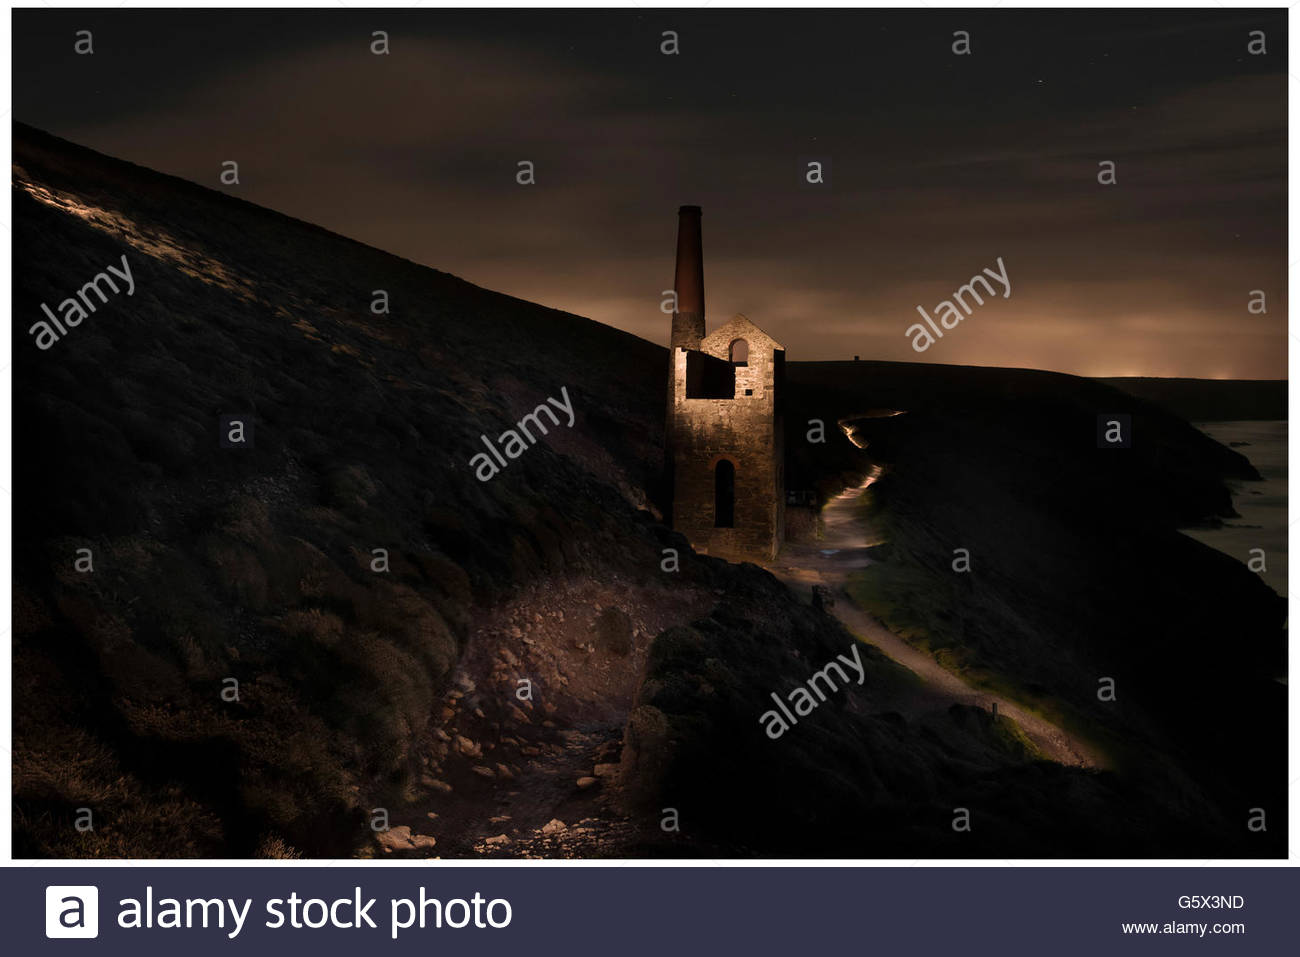 Industrial exteriors, reminding us of a more prosperous time in manufacturing - Stock Image